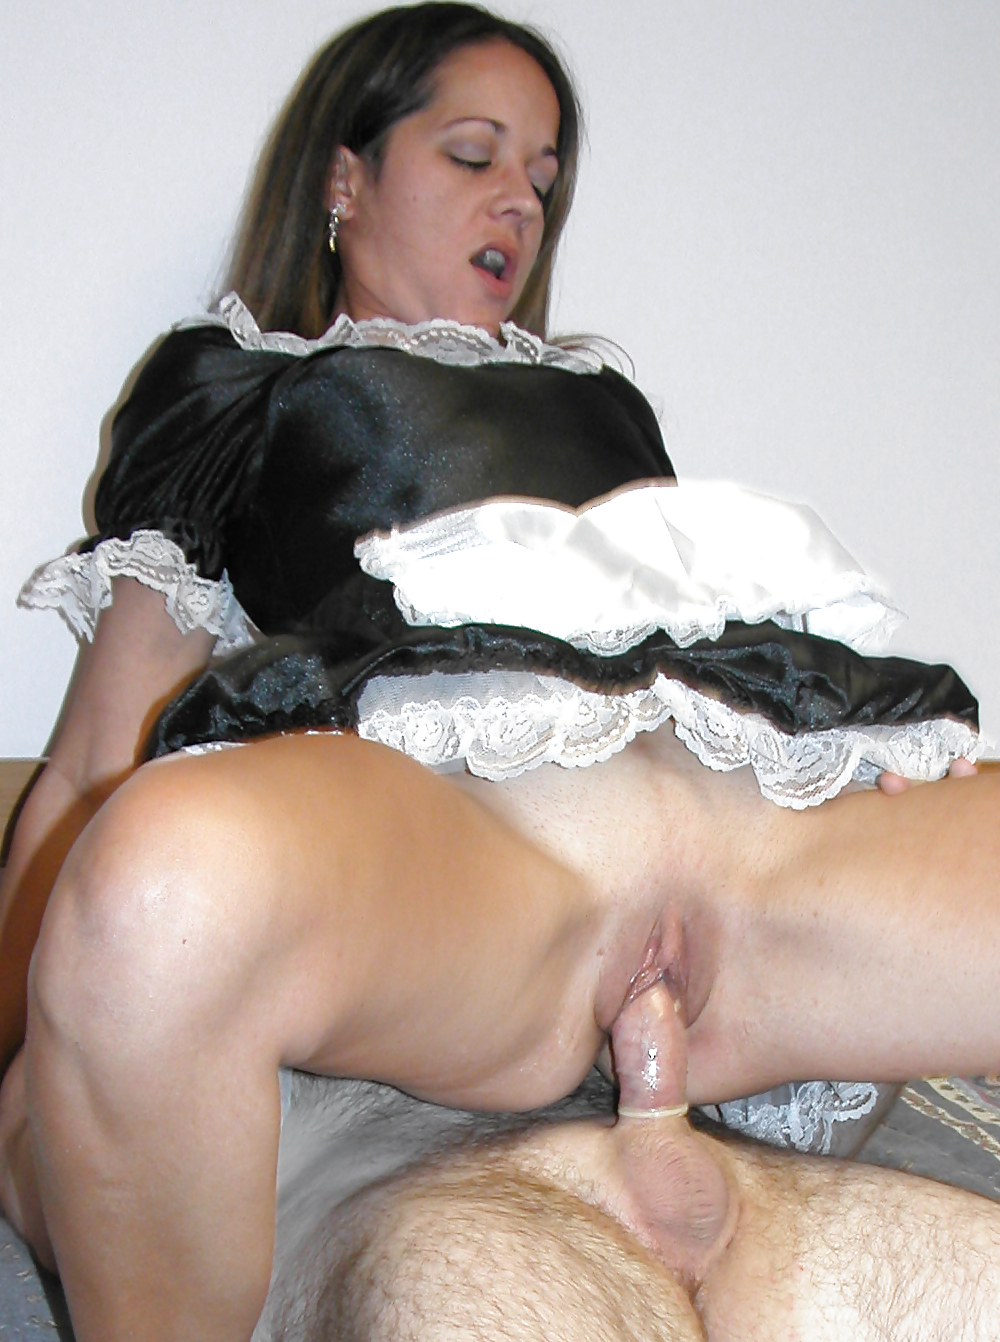 ass-french-maid-fuck-pictures-deep-jacqueline